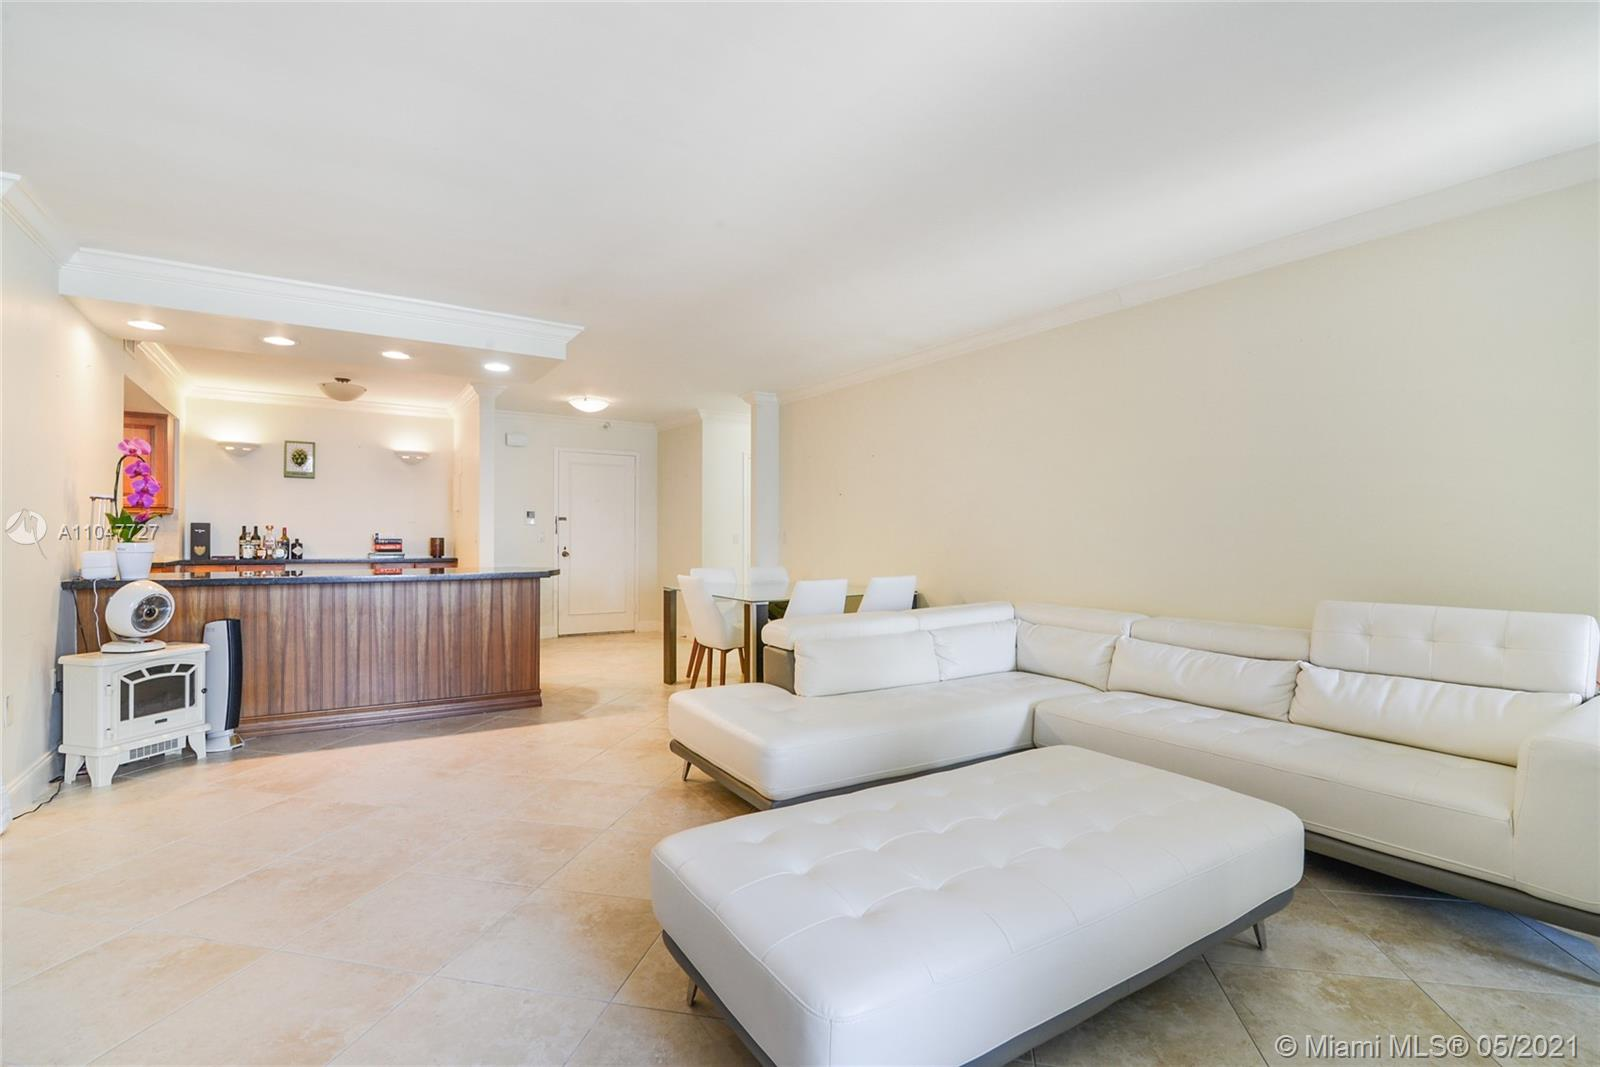 Photo of 9801 Collins Ave #14P, Bal Harbour, Florida, 33154 - View from the Balcony